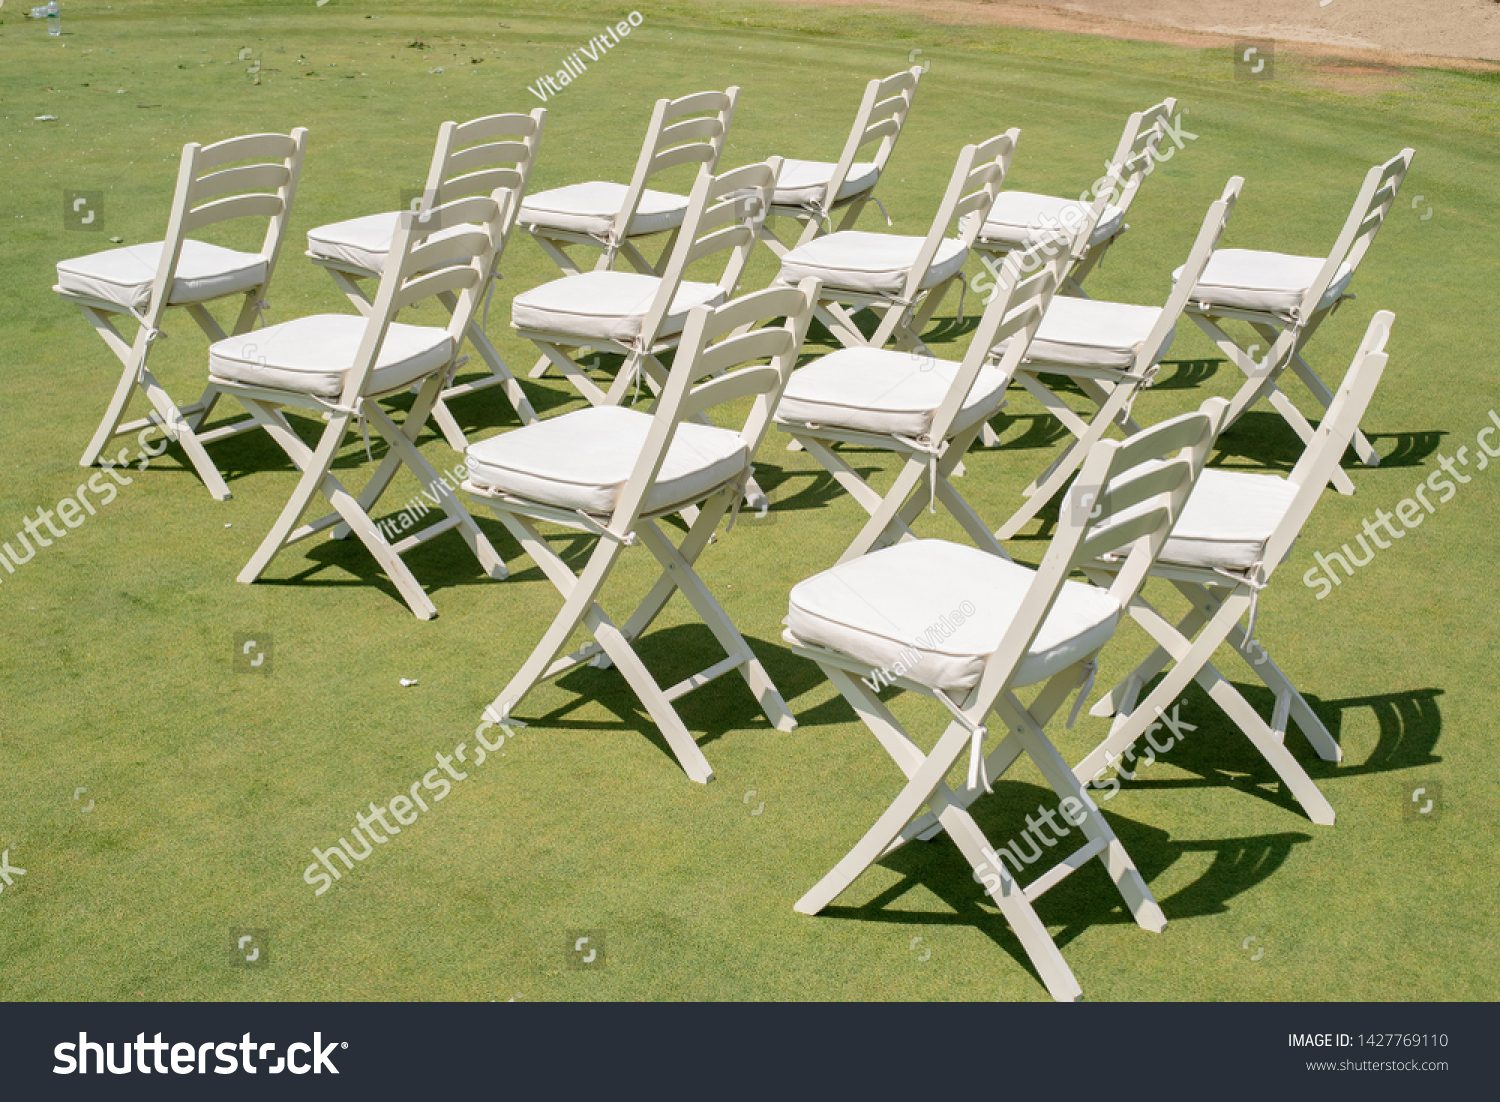 Decorating Wedding Ceremony Rows Empty White Stock Photo Edit Now 1427769110